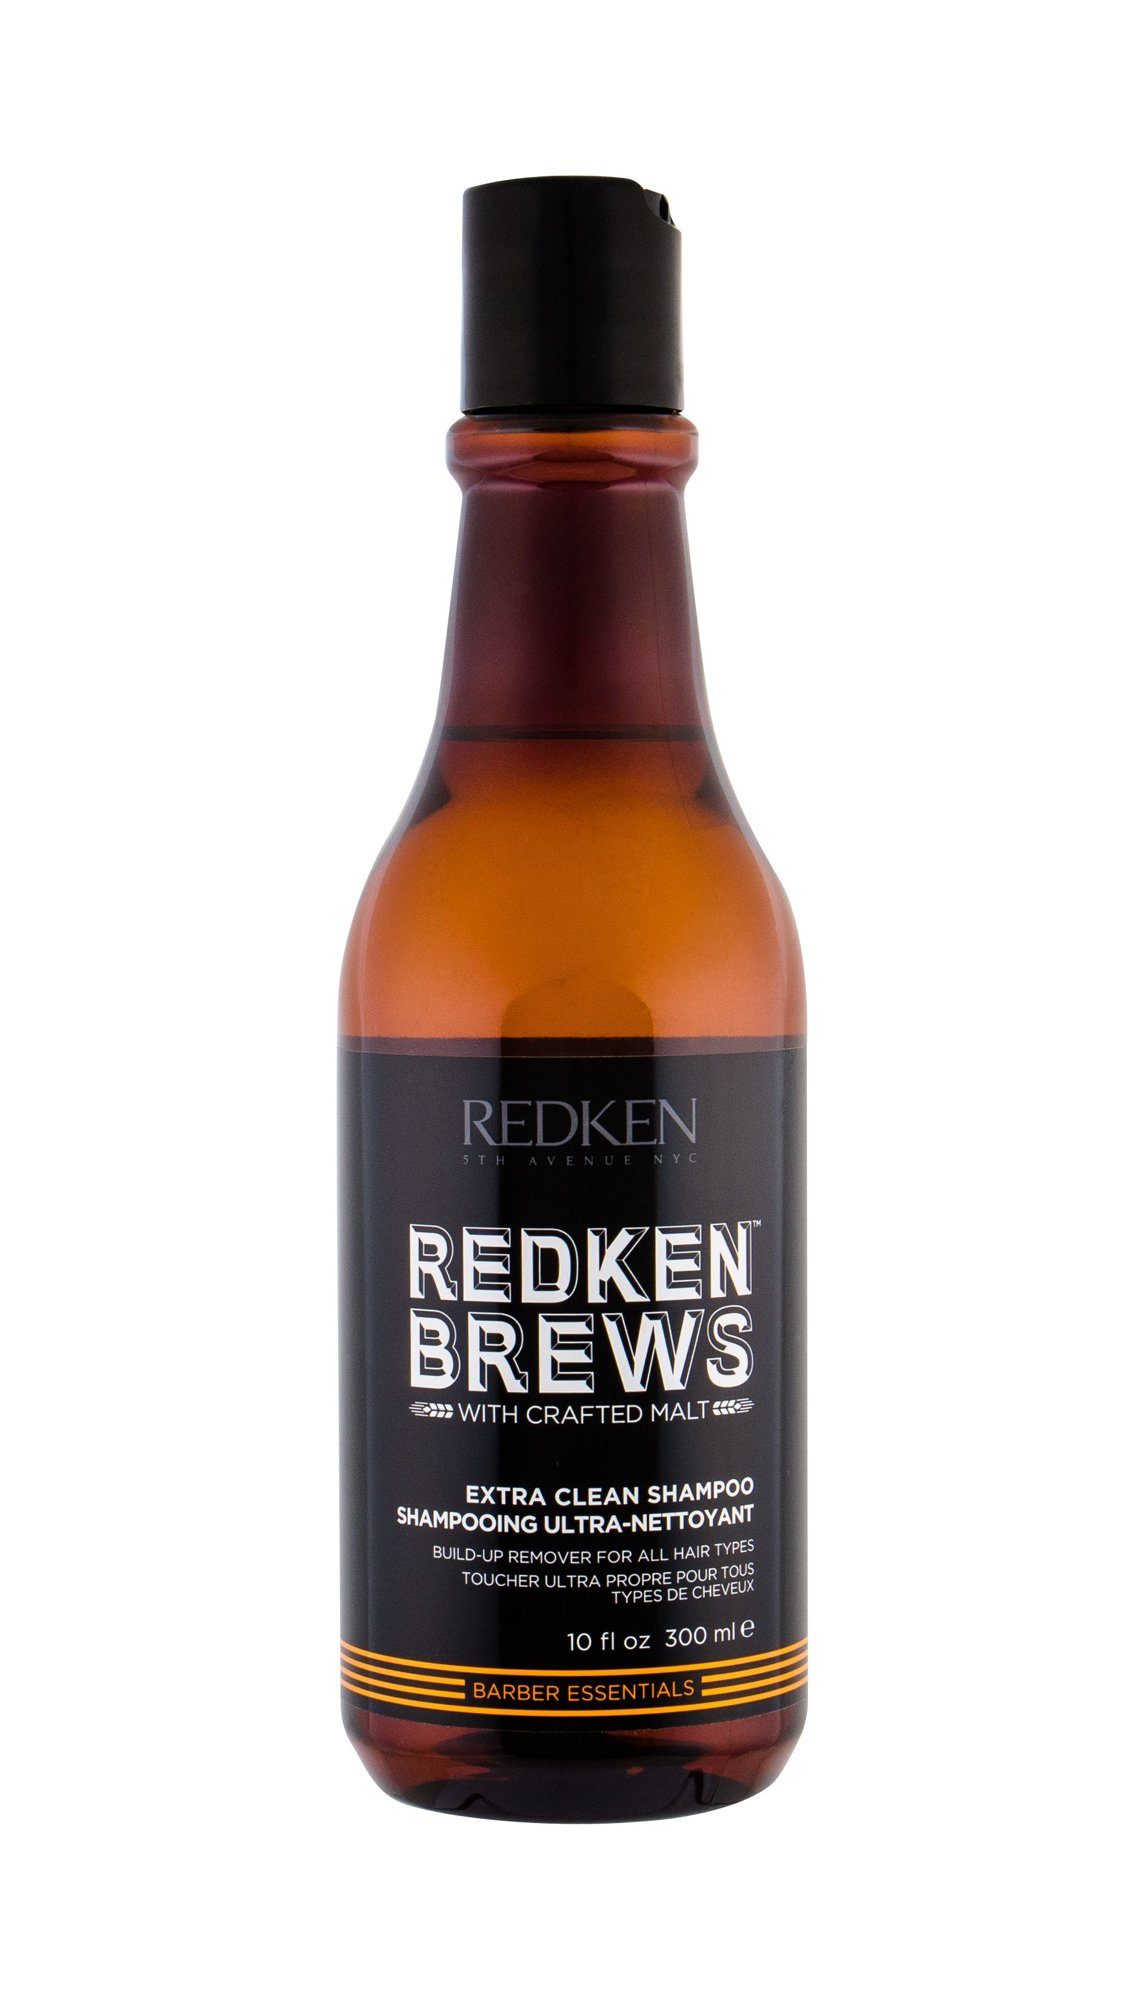 Redken Brews Shampoo 300ml